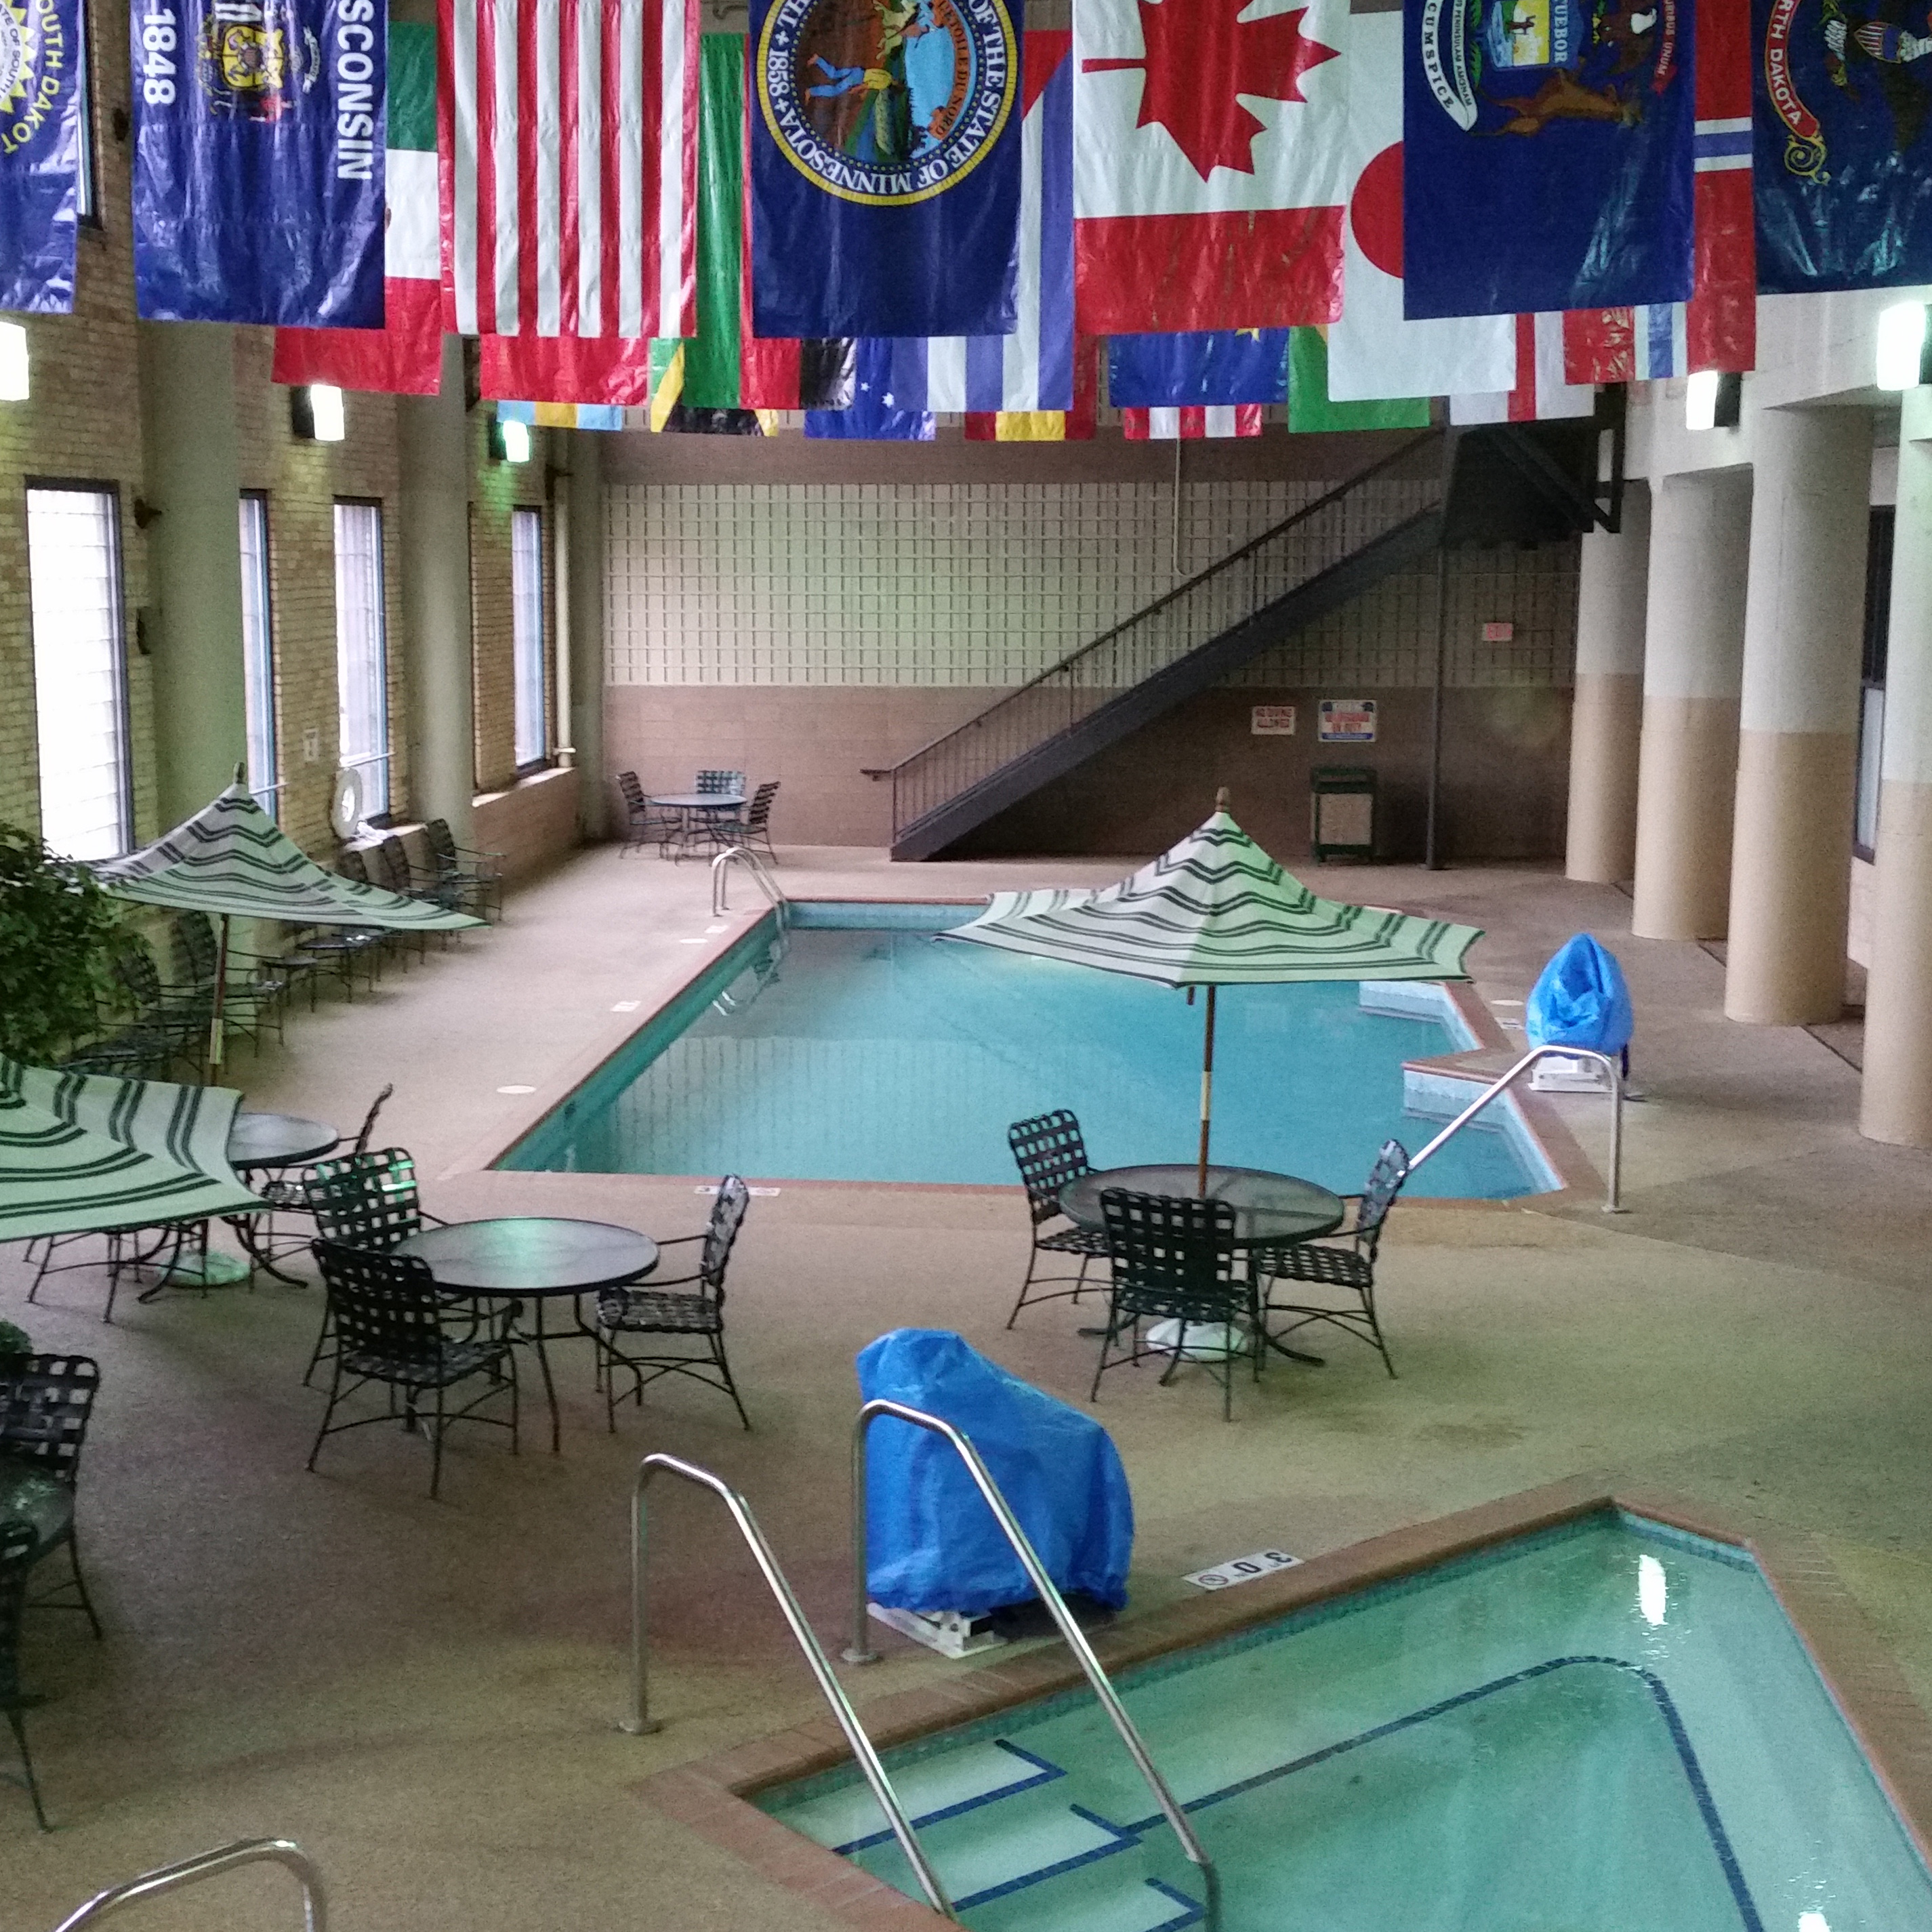 The Suites Duluth Pool